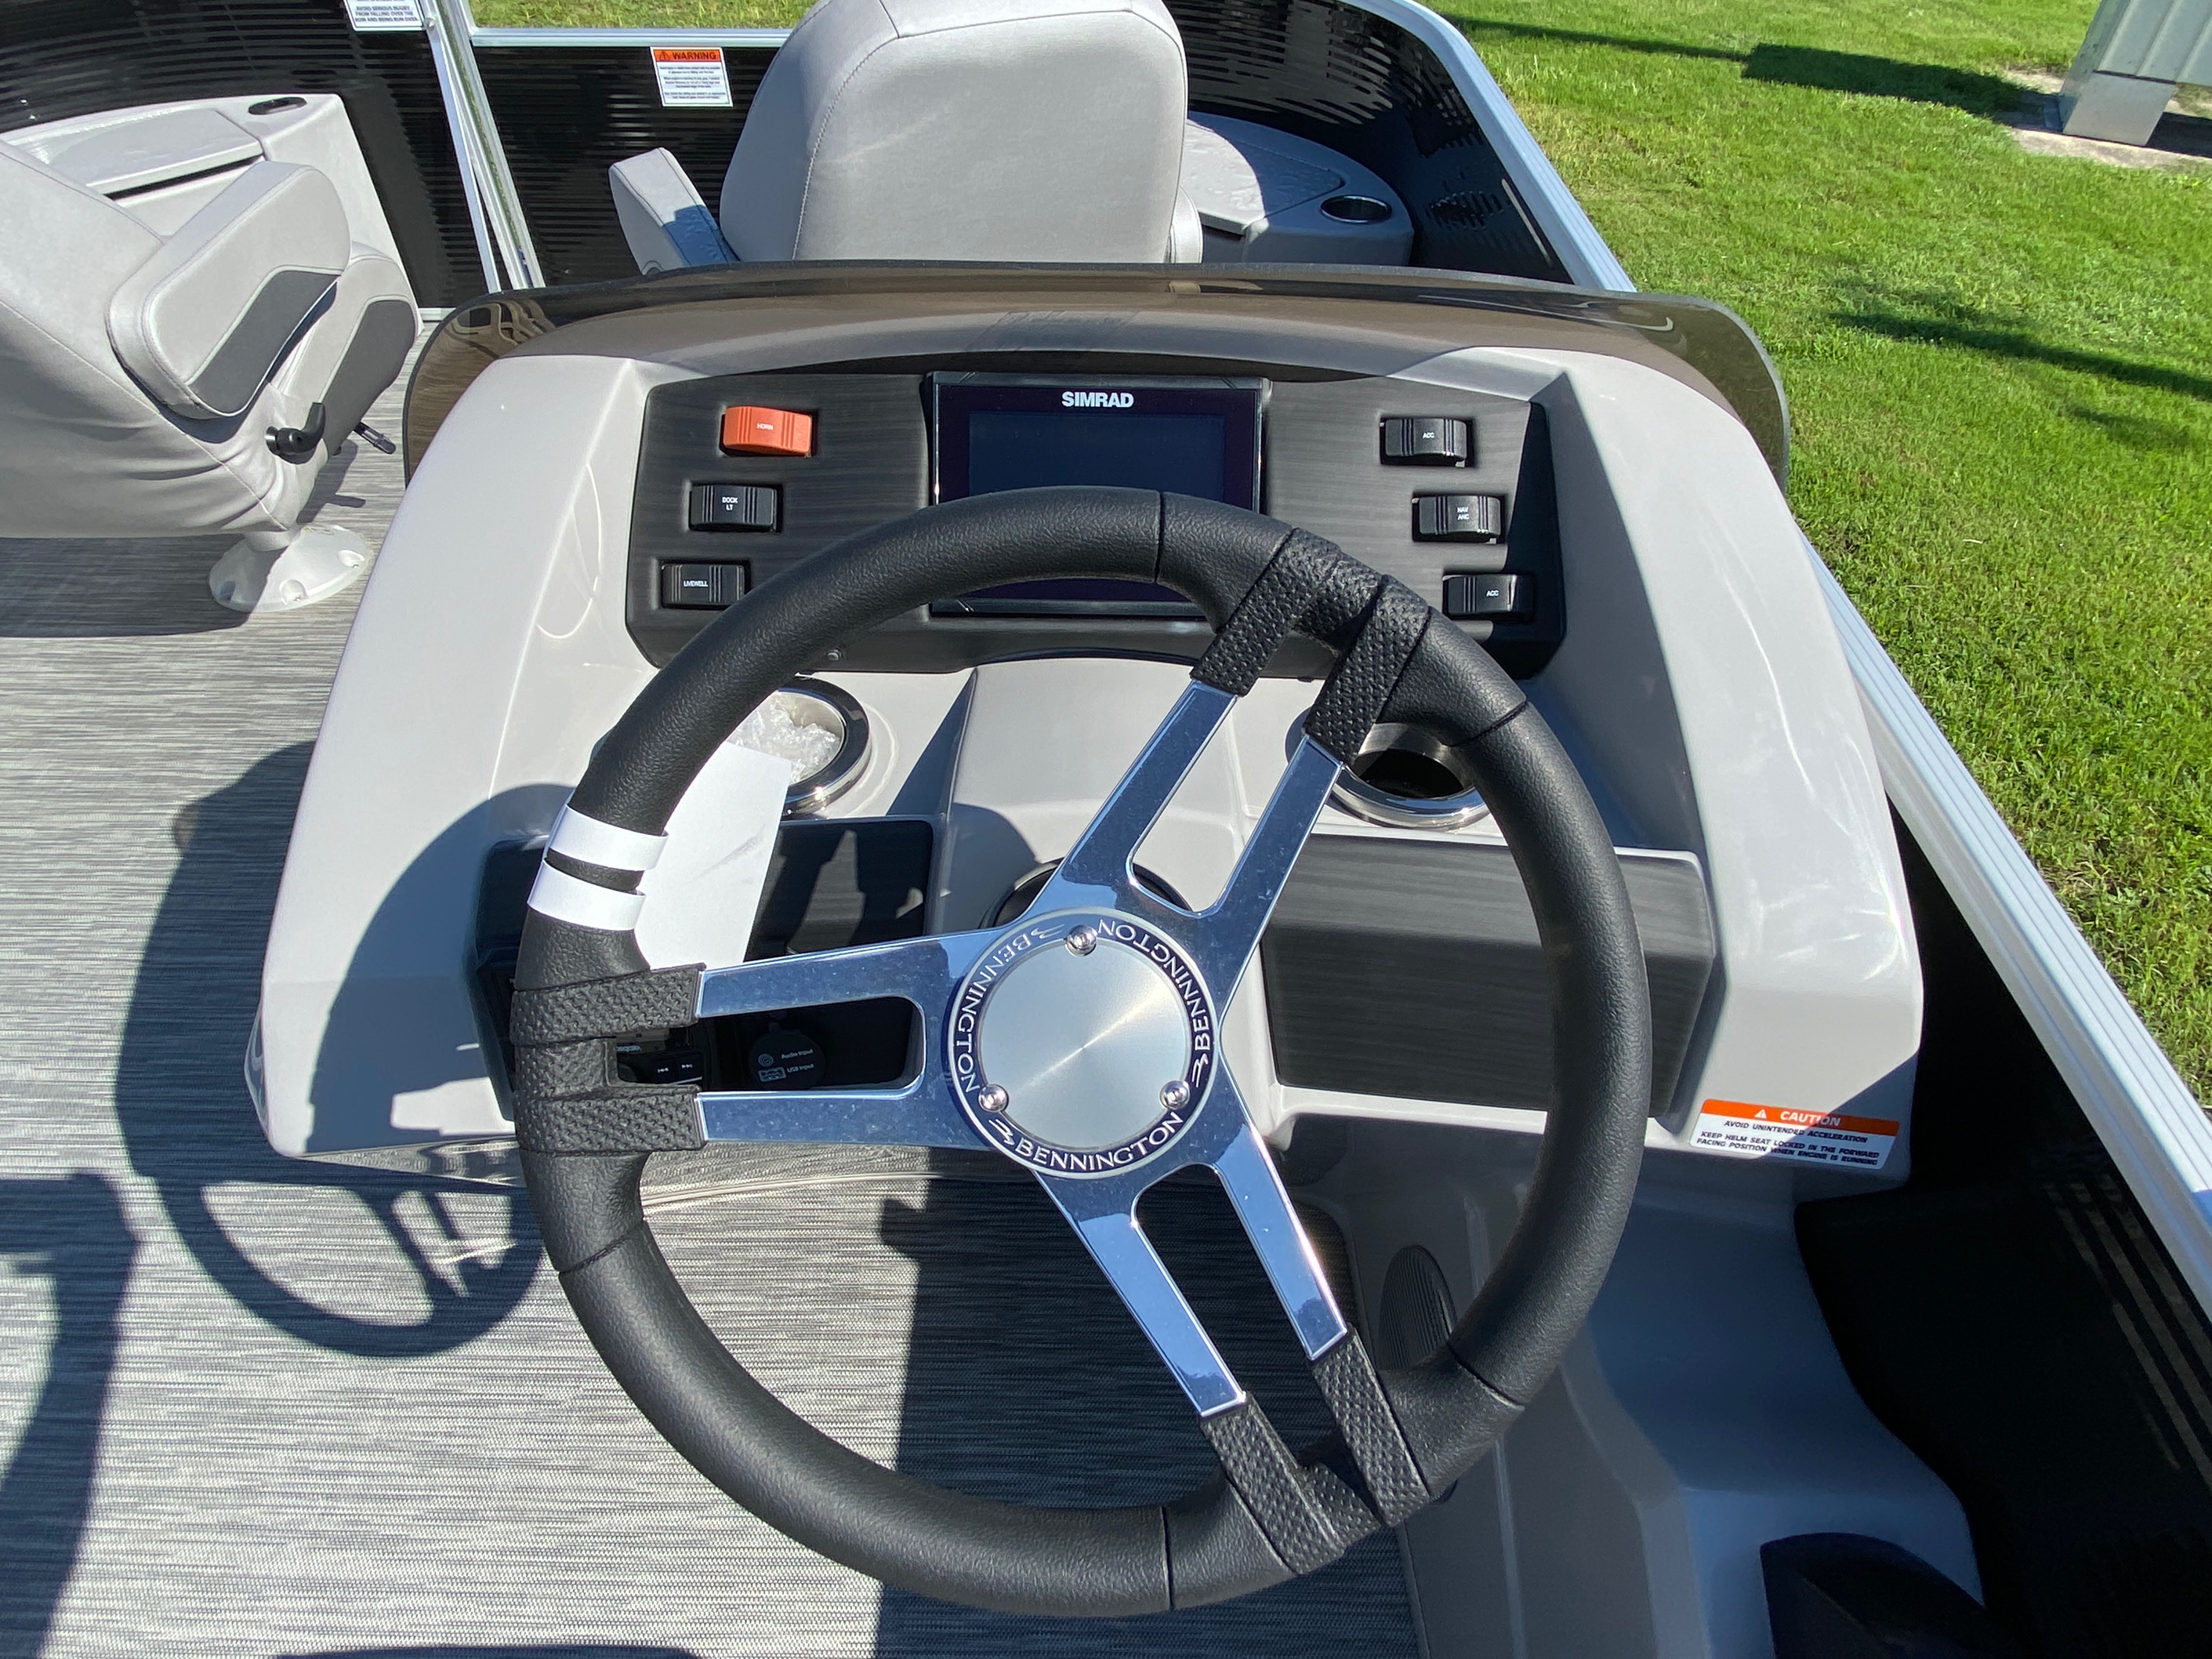 2020 Bennington boat for sale, model of the boat is 20 SFX & Image # 8 of 9